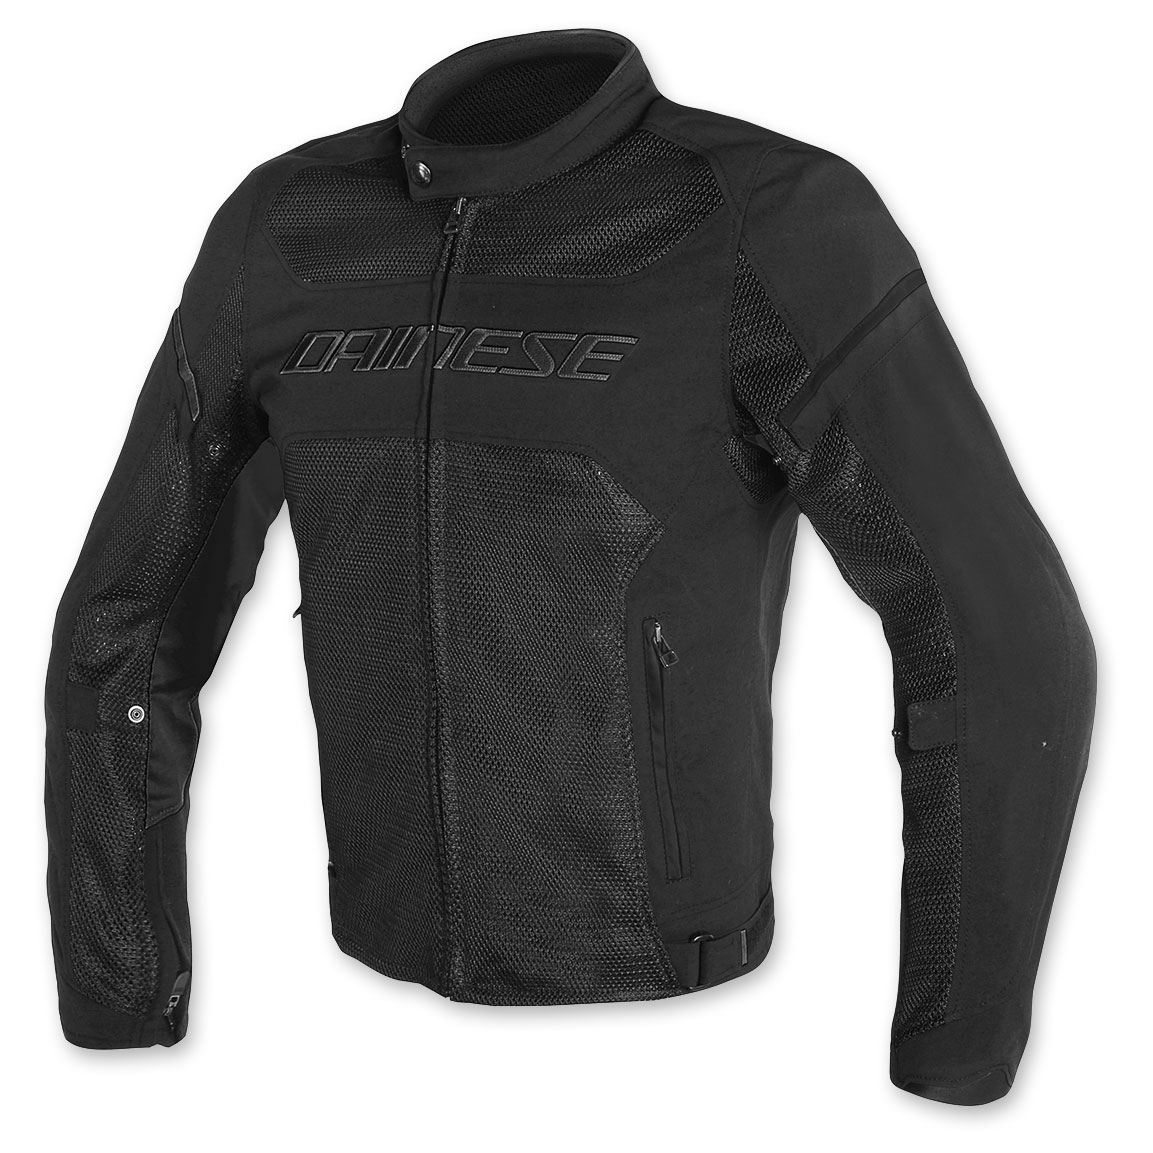 Dainese Men's Air Frame D1 Black/Black/Black Jacket